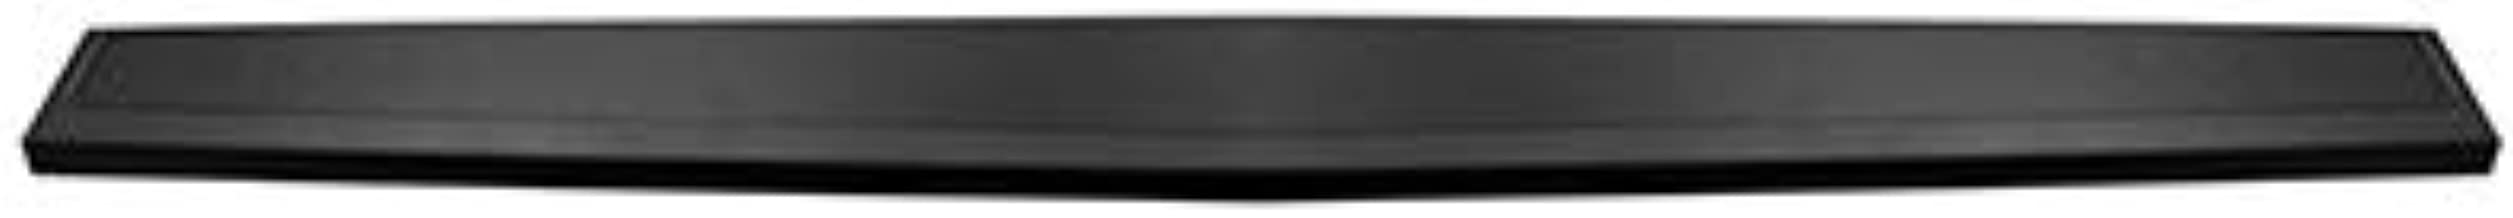 New Upper Tailgate Molding For 2014-2018 GMC Sierra Denali and Chevrolet Silverado 1500, Textured Black, Made of Plastic GM1904110 191275058589